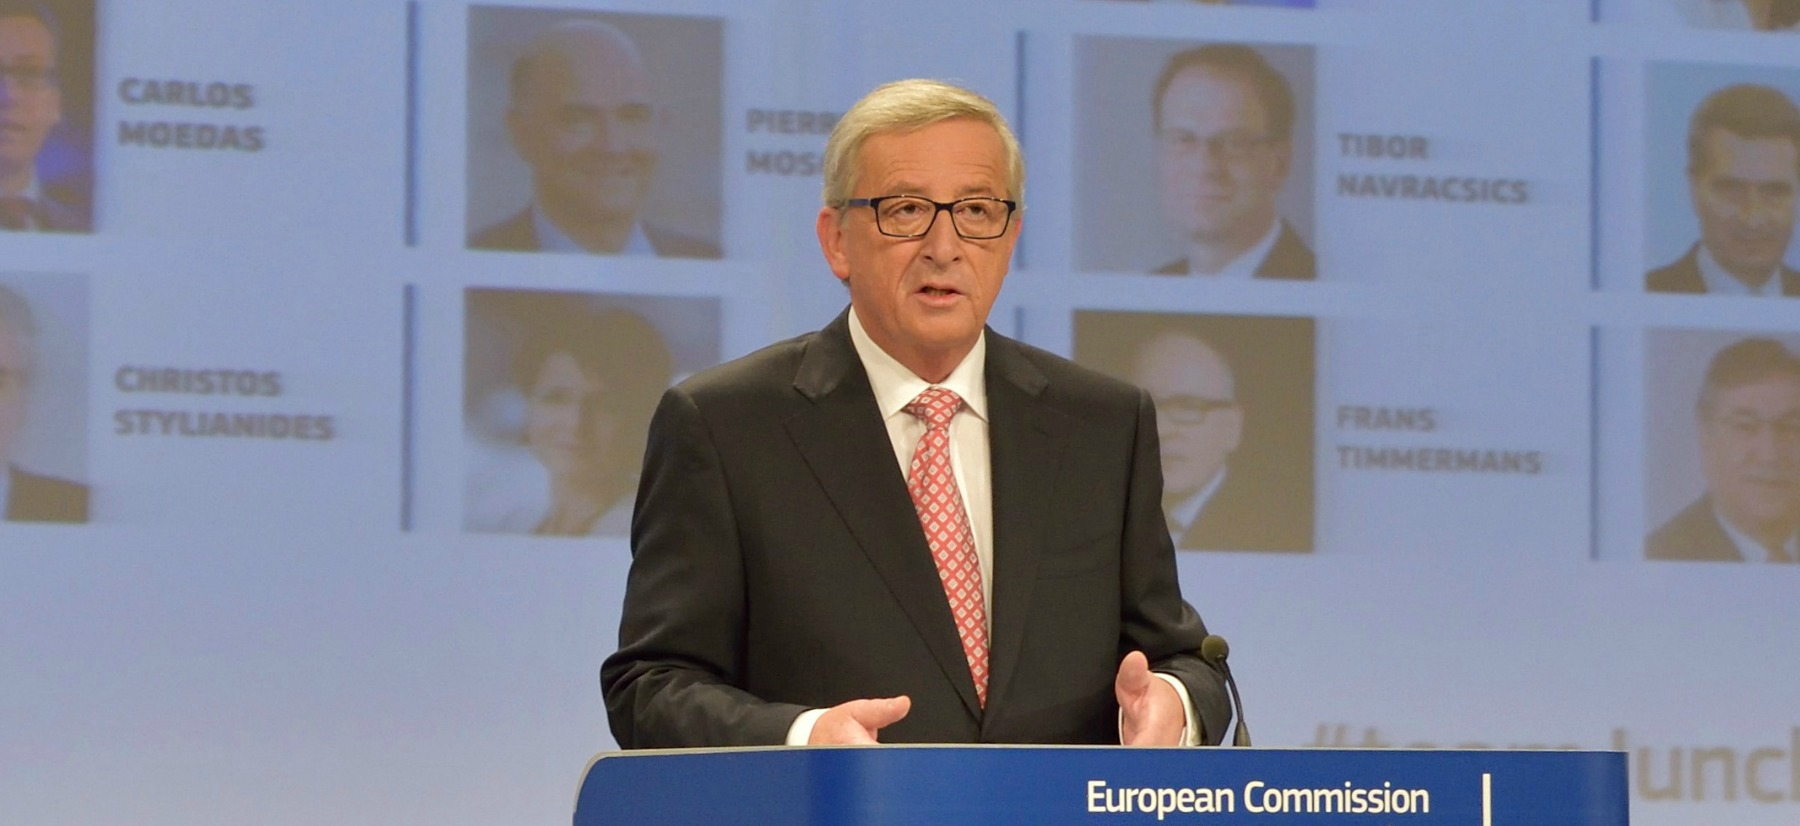 Jean-Claude Juncker [European Commission]